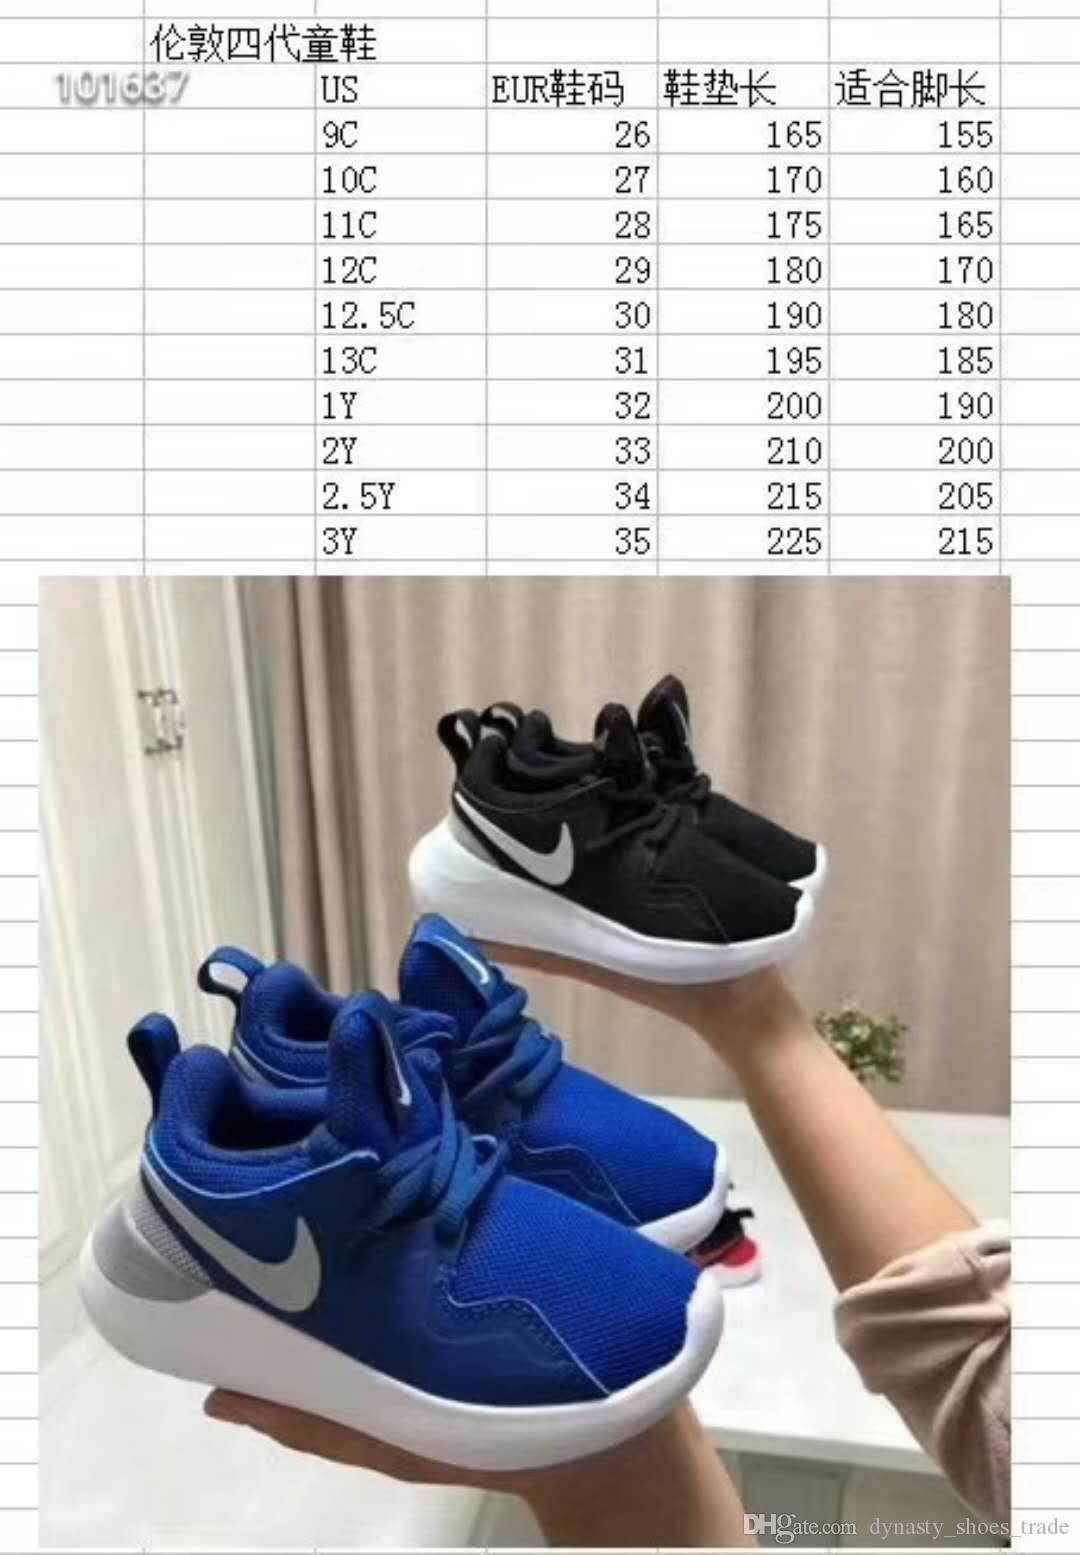 2018 New Air More Uptempo EU City Pack UK London Men Women Kids Basketball  Shoes Air More Uptempo EU City Pack France Youth Big Boy Sneakers Cheap Kids  ... 3a8c8c7c16